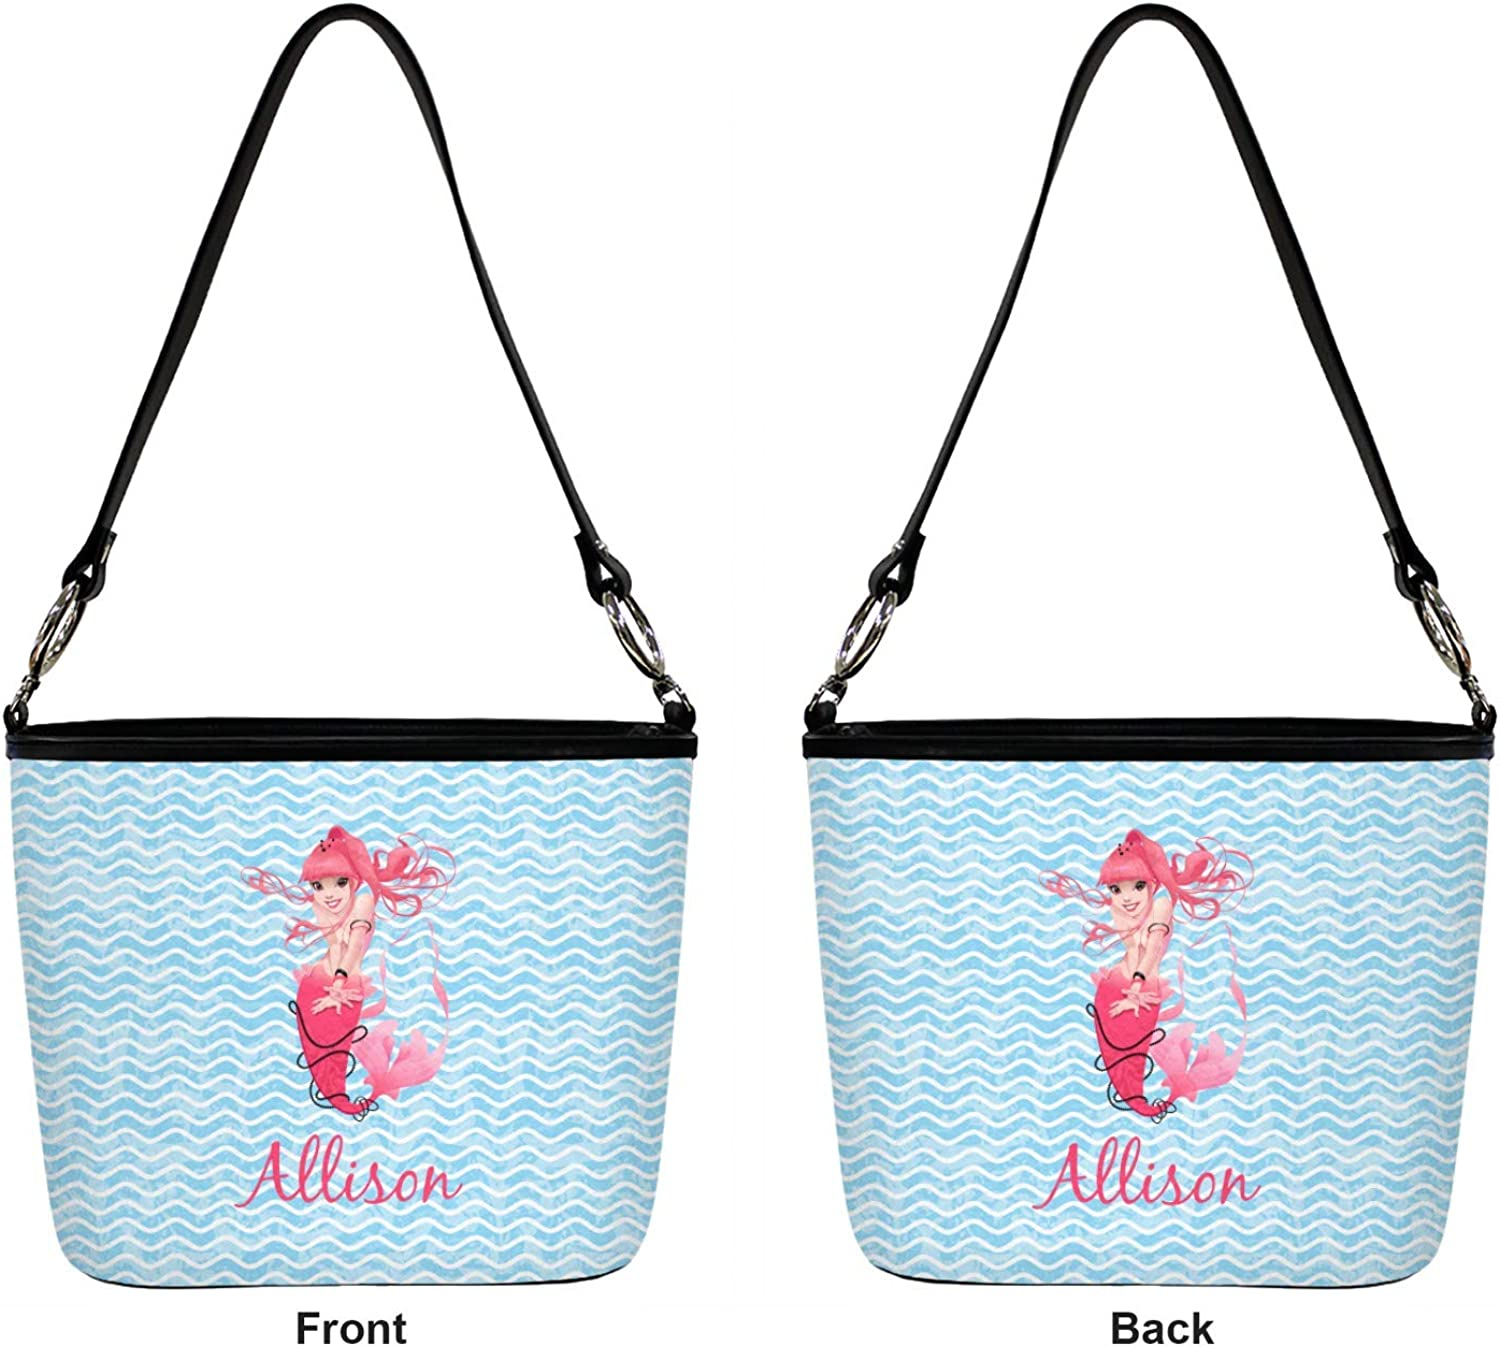 Personalized Front /& Back Mermaids Hobo Purse w//Genuine Leather Trim